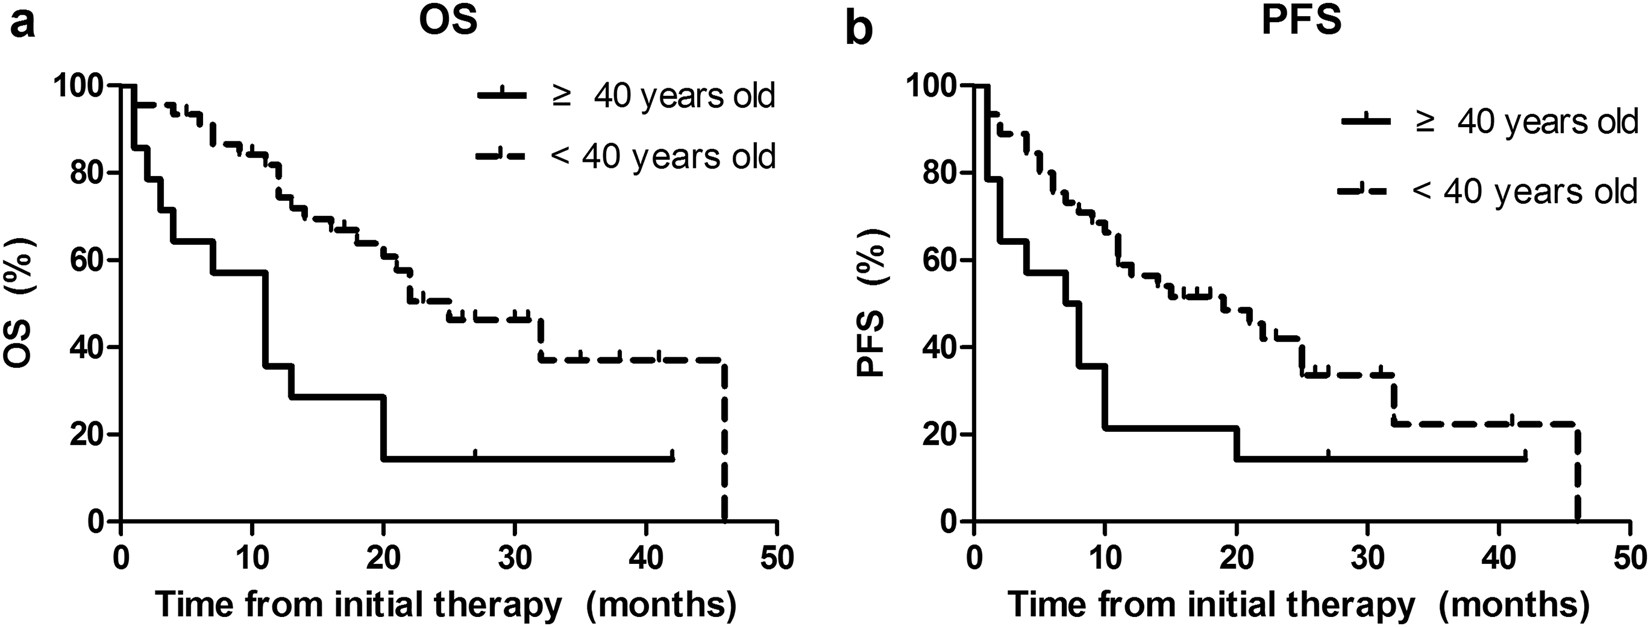 patients over 40 years old with precursor t cell lymphoblasticpatients over 40 years old with precursor t cell lymphoblastic lymphoma have different prognostic factors comparing to the youngers scientific reports